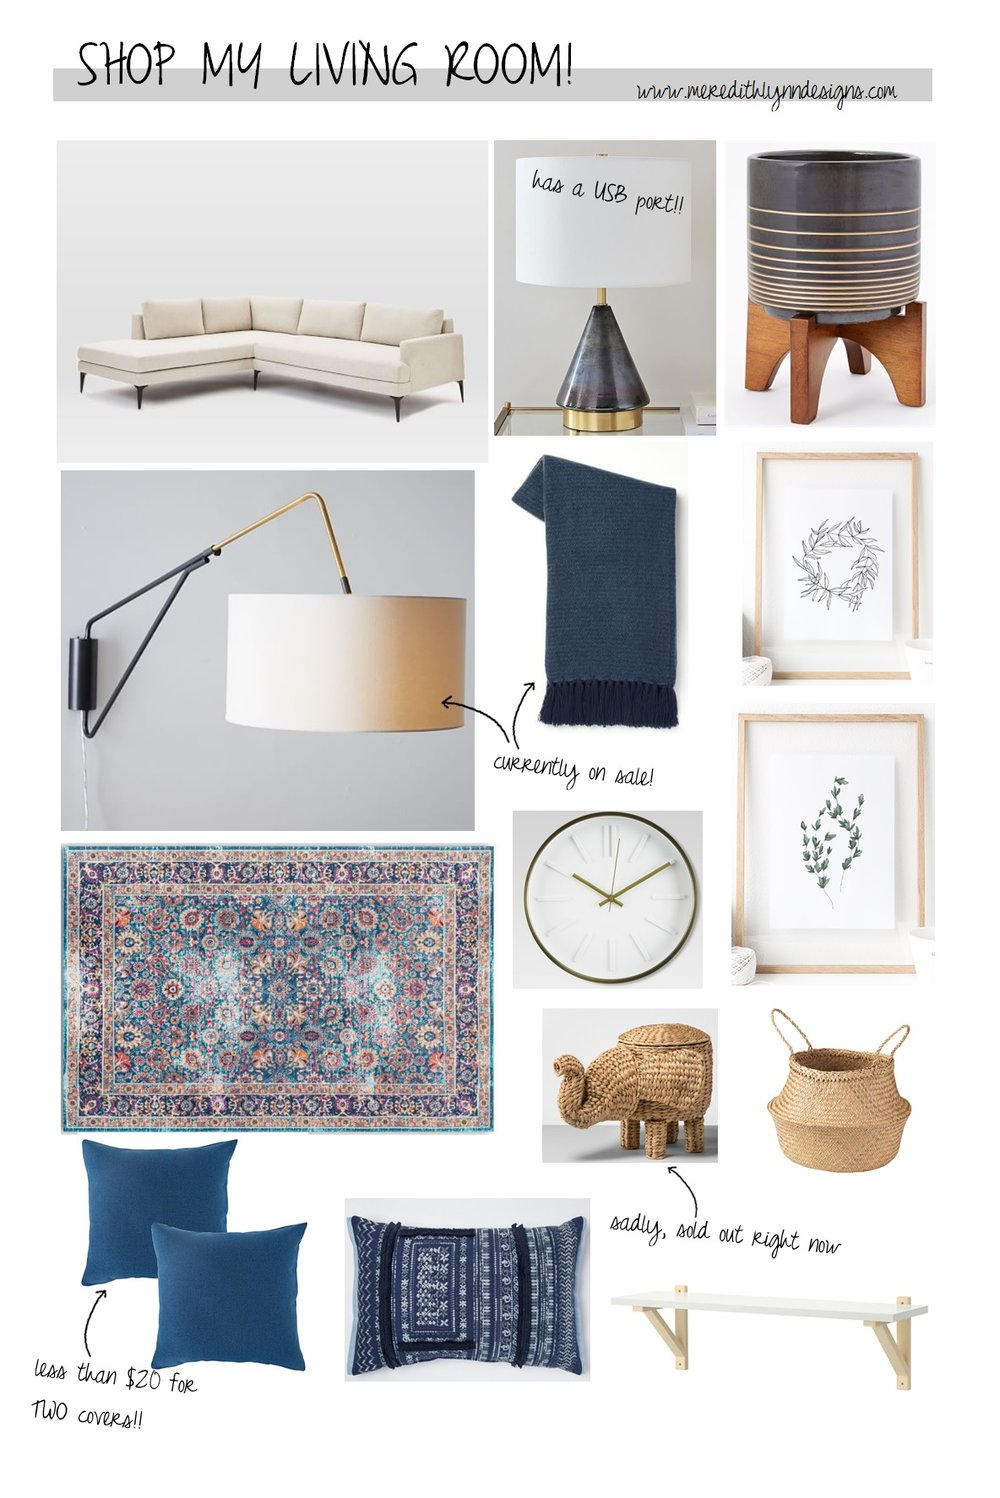 Sofa  |  Table Lamp  |  Planter  |  Sconce  |  Throw Blanket  |  Jasmine Wreath Print  |  Thyme Print  |  Area Rug  |  Wall Clock  |  Blue Pillow Covers  |  Fringe Pillow  |  Elephant Basket  |  Belly Basket  |  Wall Shelf